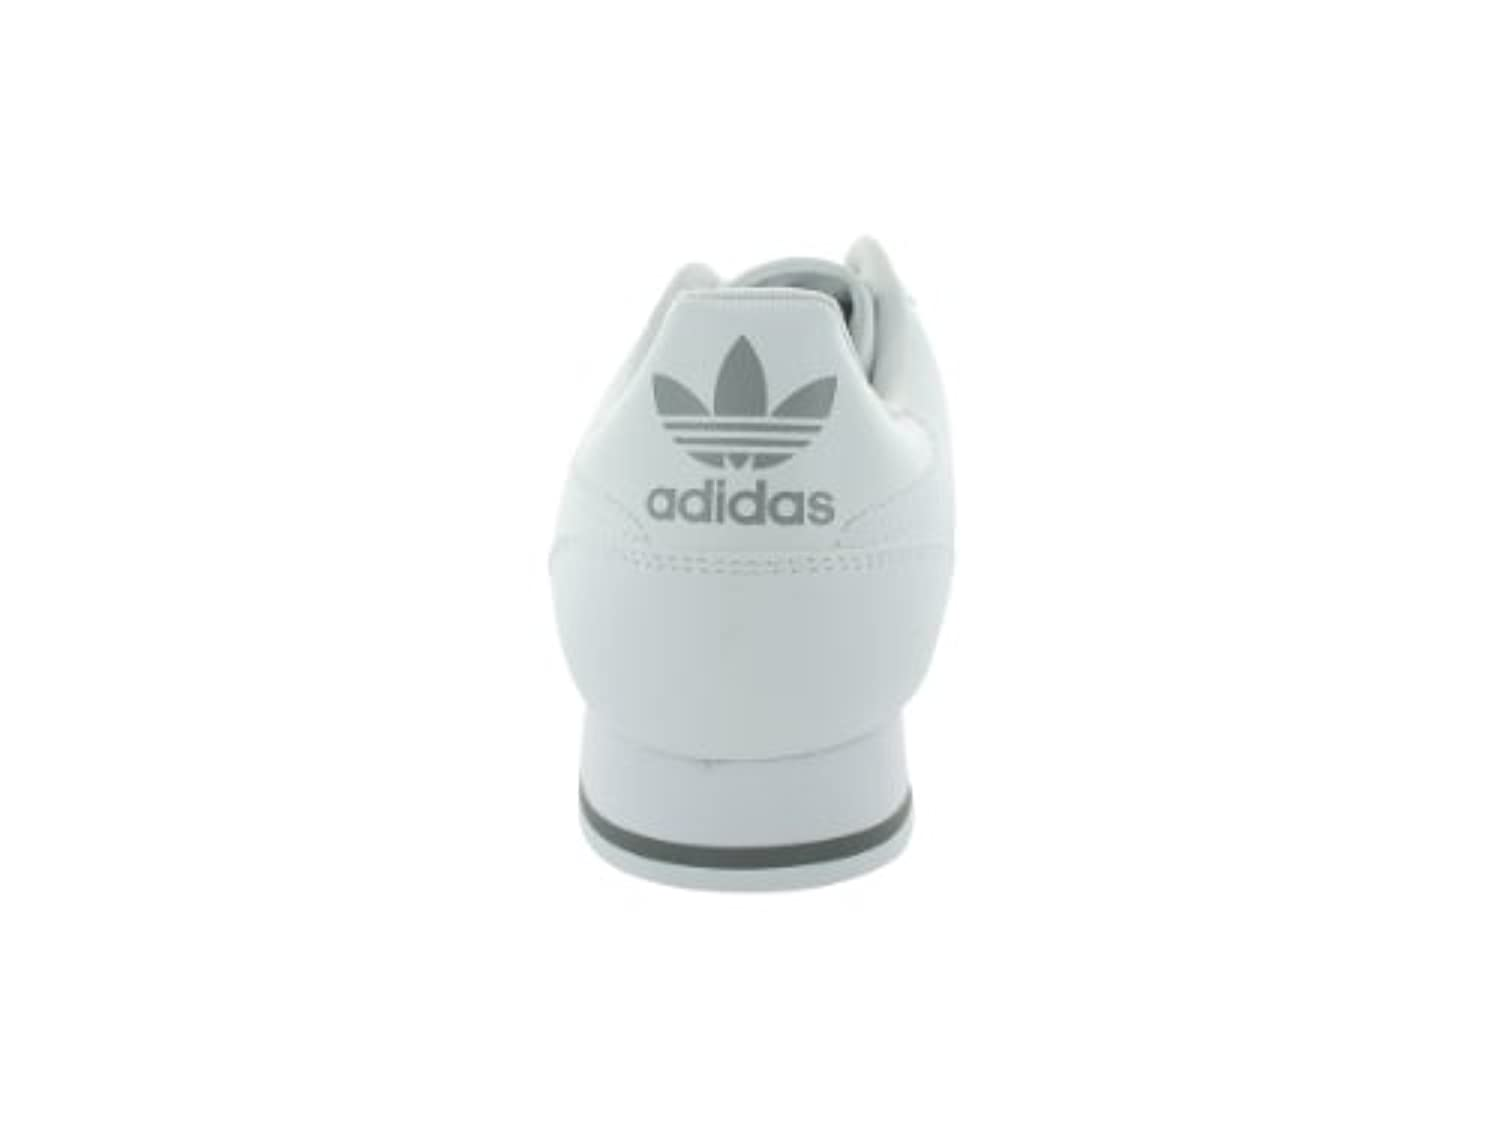 Adidas Originals Orion 2 Mens Athletic Shoes G65612 Running White 7.5 M US